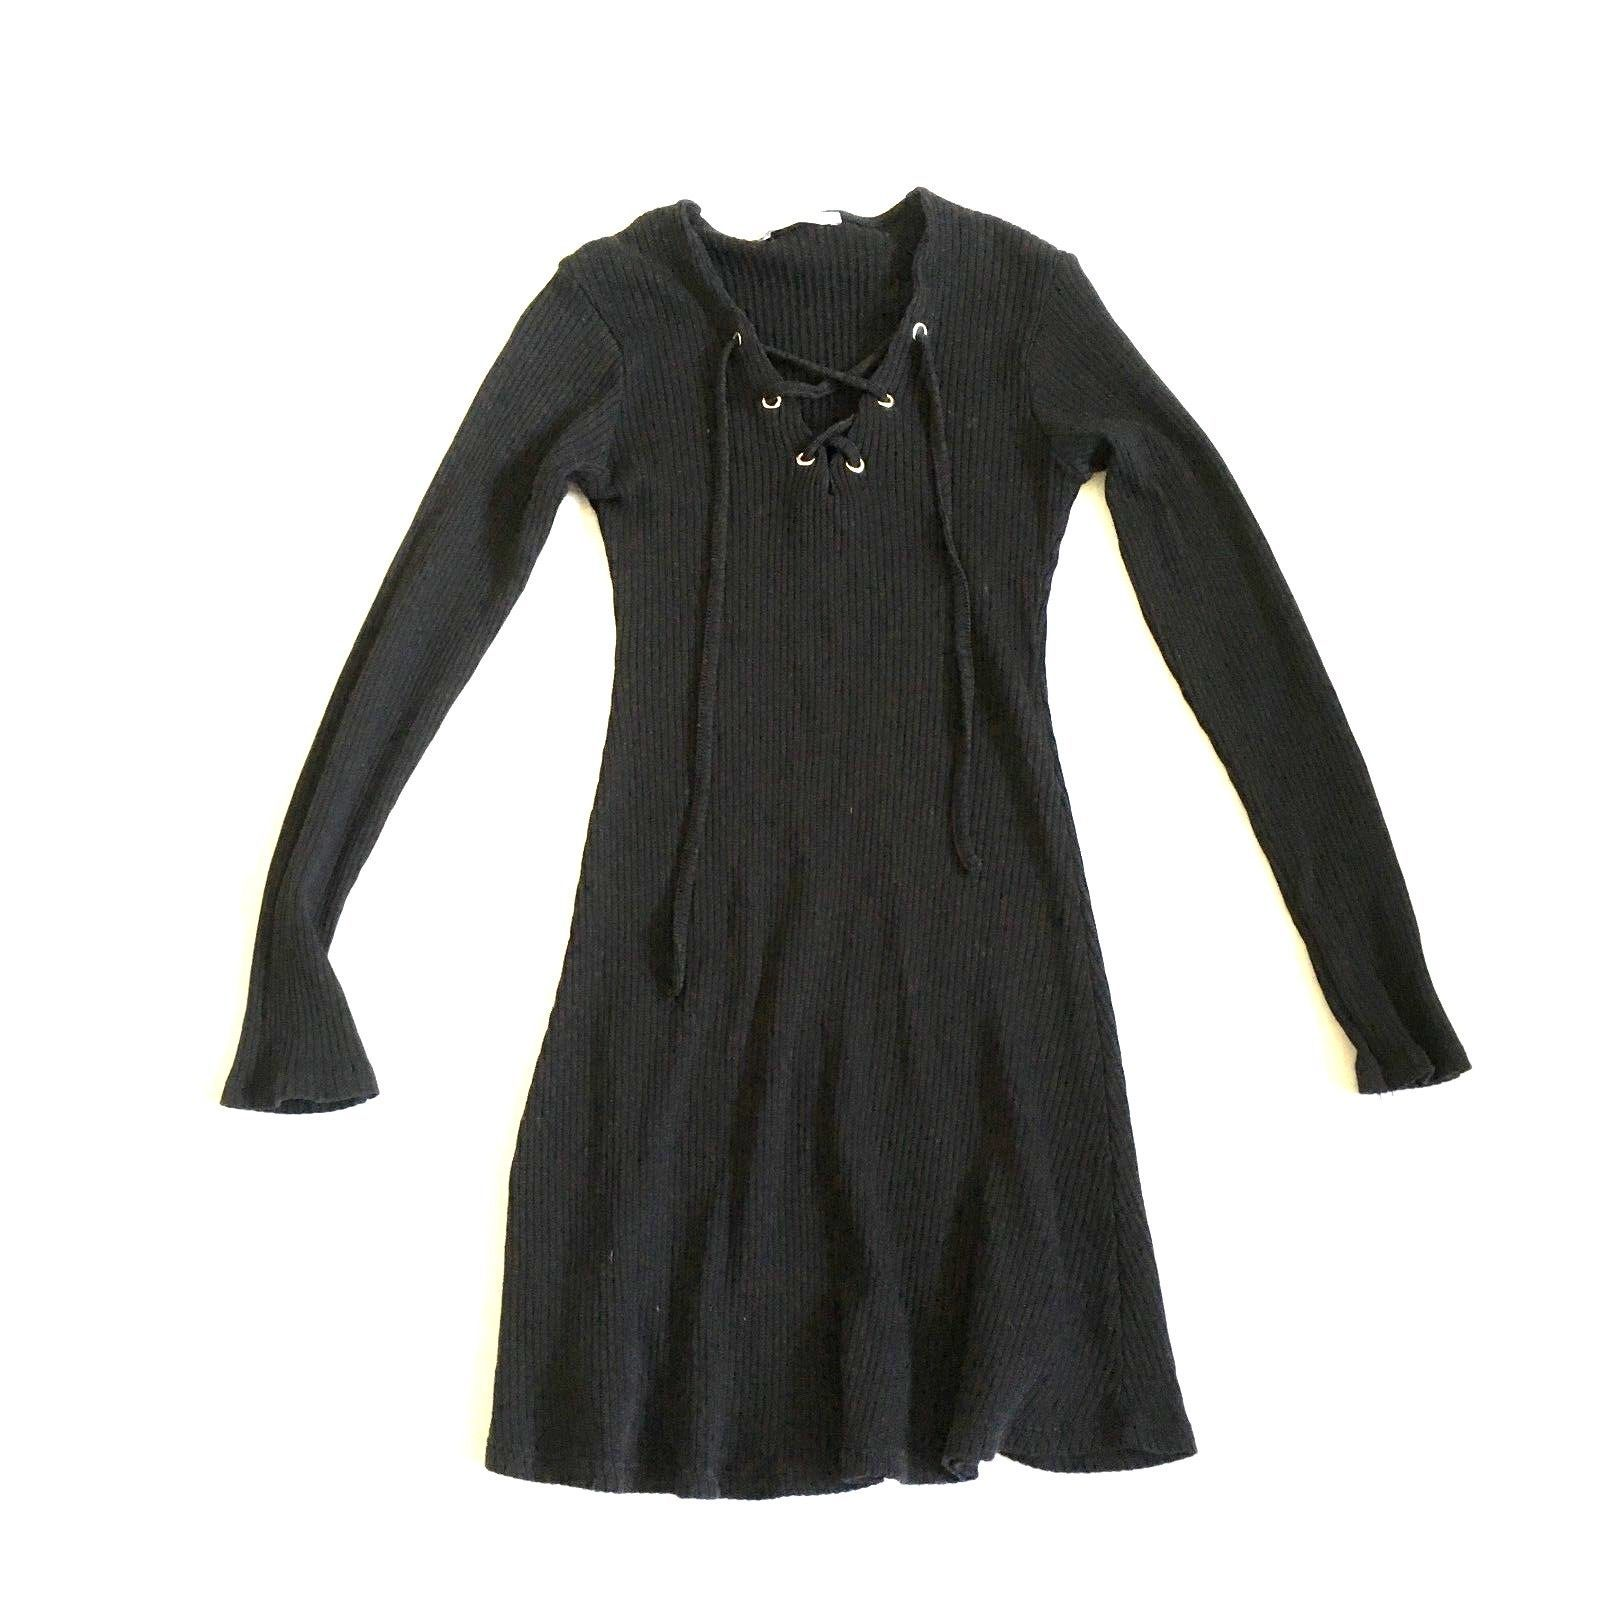 Zara trafaluc collections black ribbed v neck long sleeve dress size